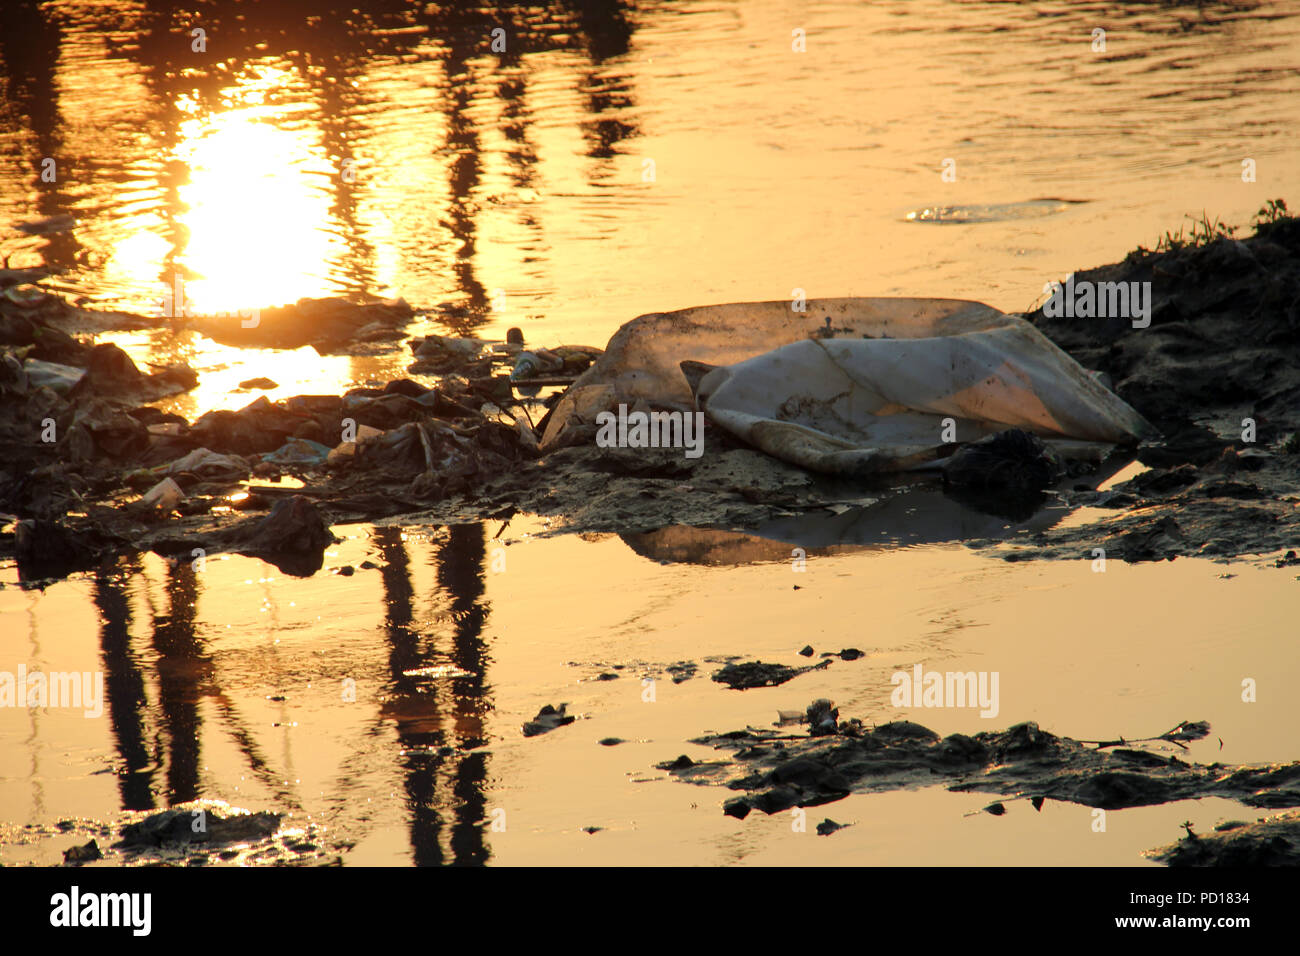 The Citarum River in Bandung is polluted - Stock Image